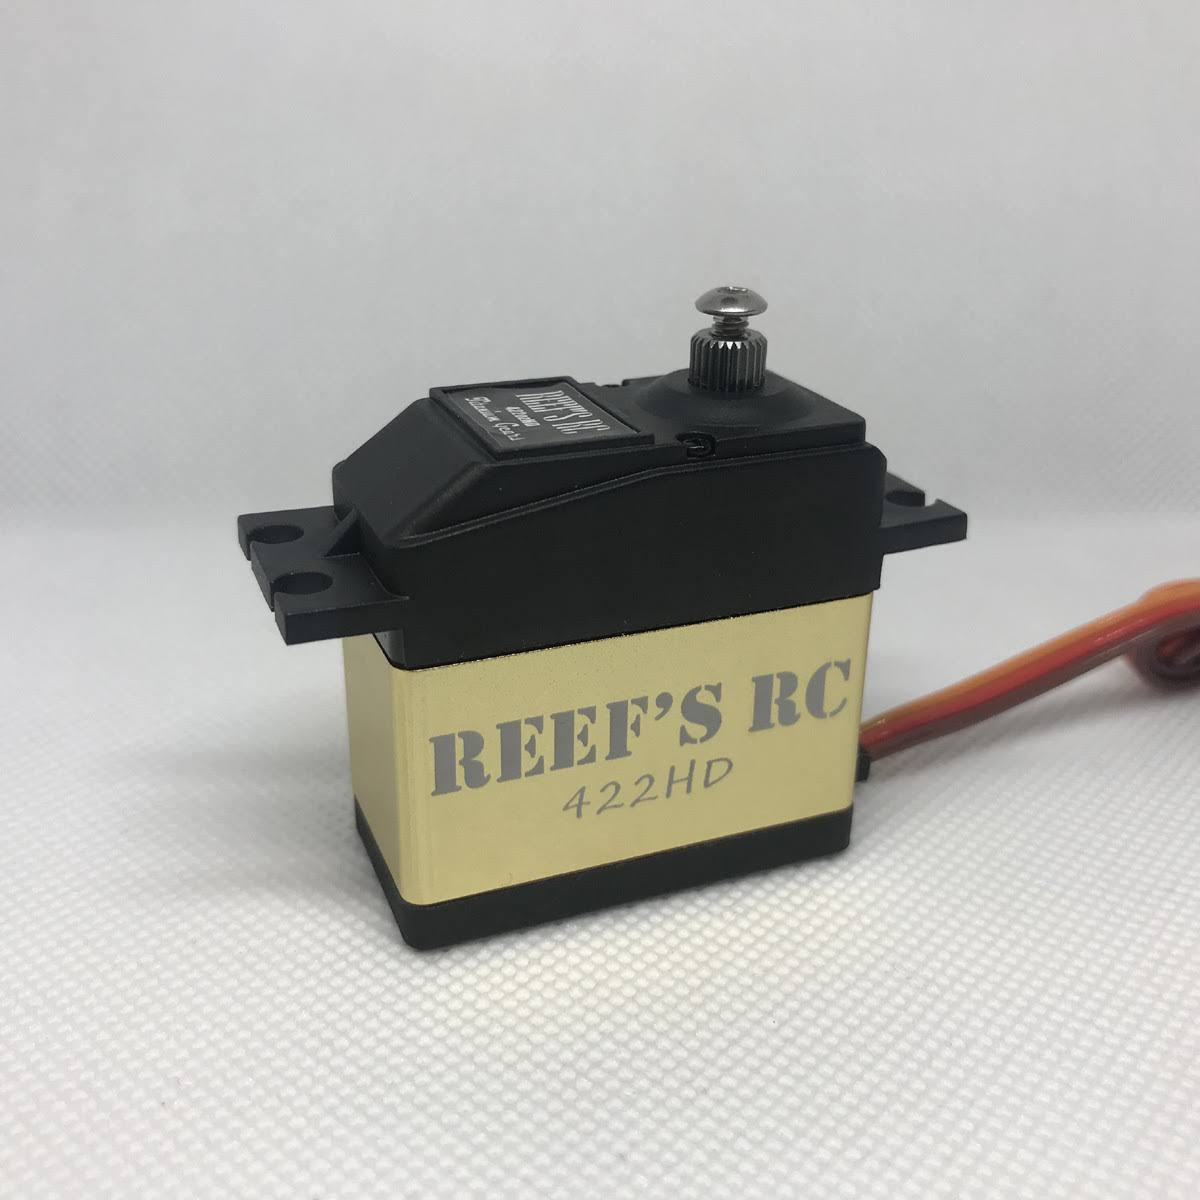 Reefs RC REEFS01 422HD High Torque Digital HV Waterproof Servo 0.12/422 @ 7.4V